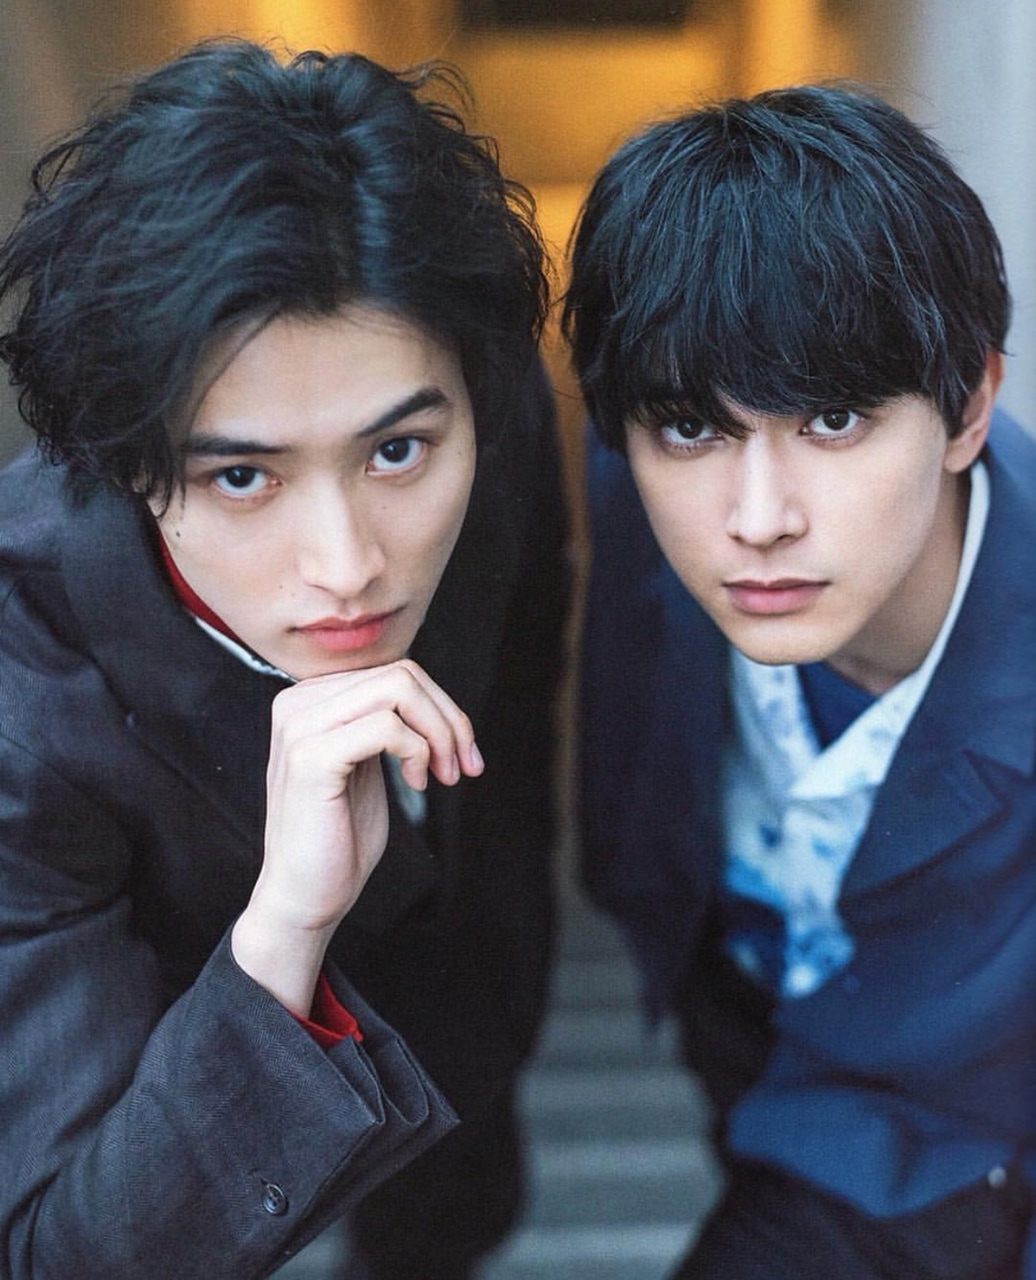 67 Images About 吉沢亮 On We Heart It See More About 吉沢亮 And